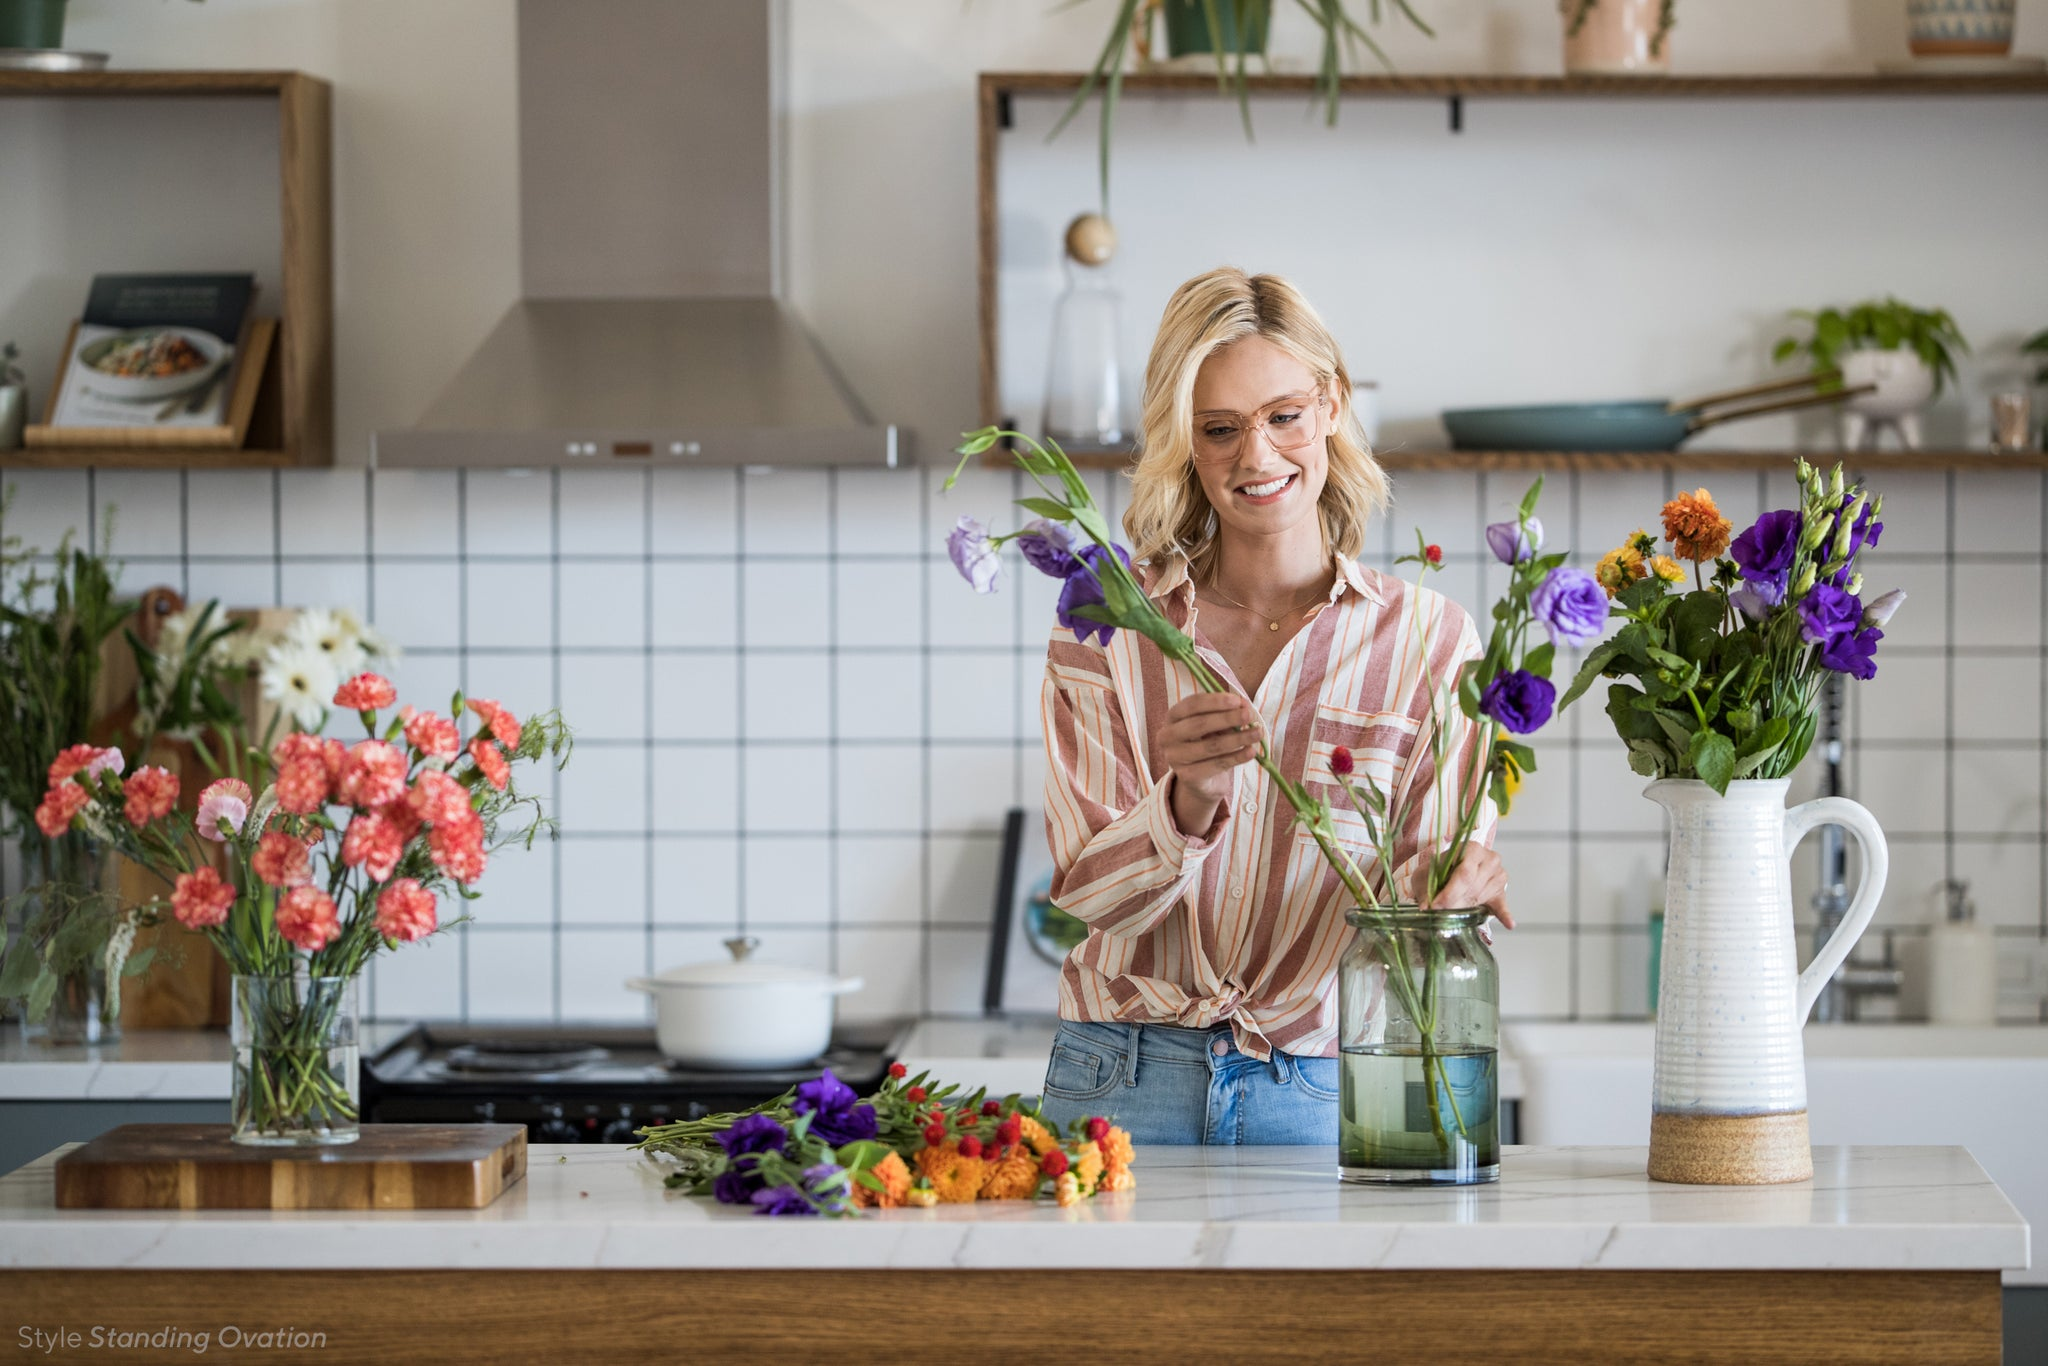 Blonde woman arranging flowers in her kitchen and wearing Peepers Standing Ovation blue light reading glasses